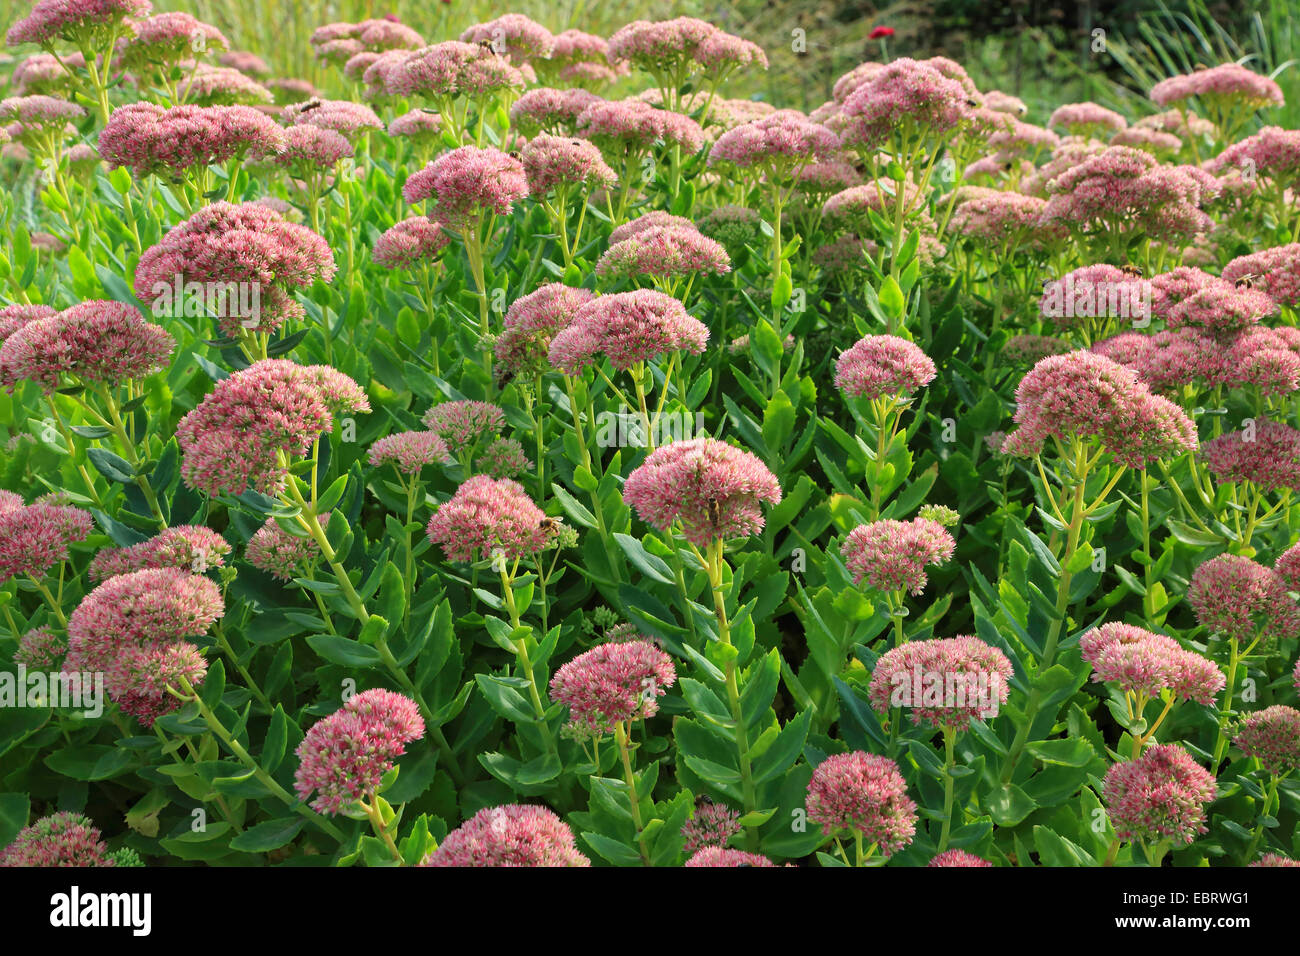 Orpine stonecrop, Garden stonecrop, Live-forever stonecrop (Sedum telephium, Hylotelephium telephium), blooming - Stock Image